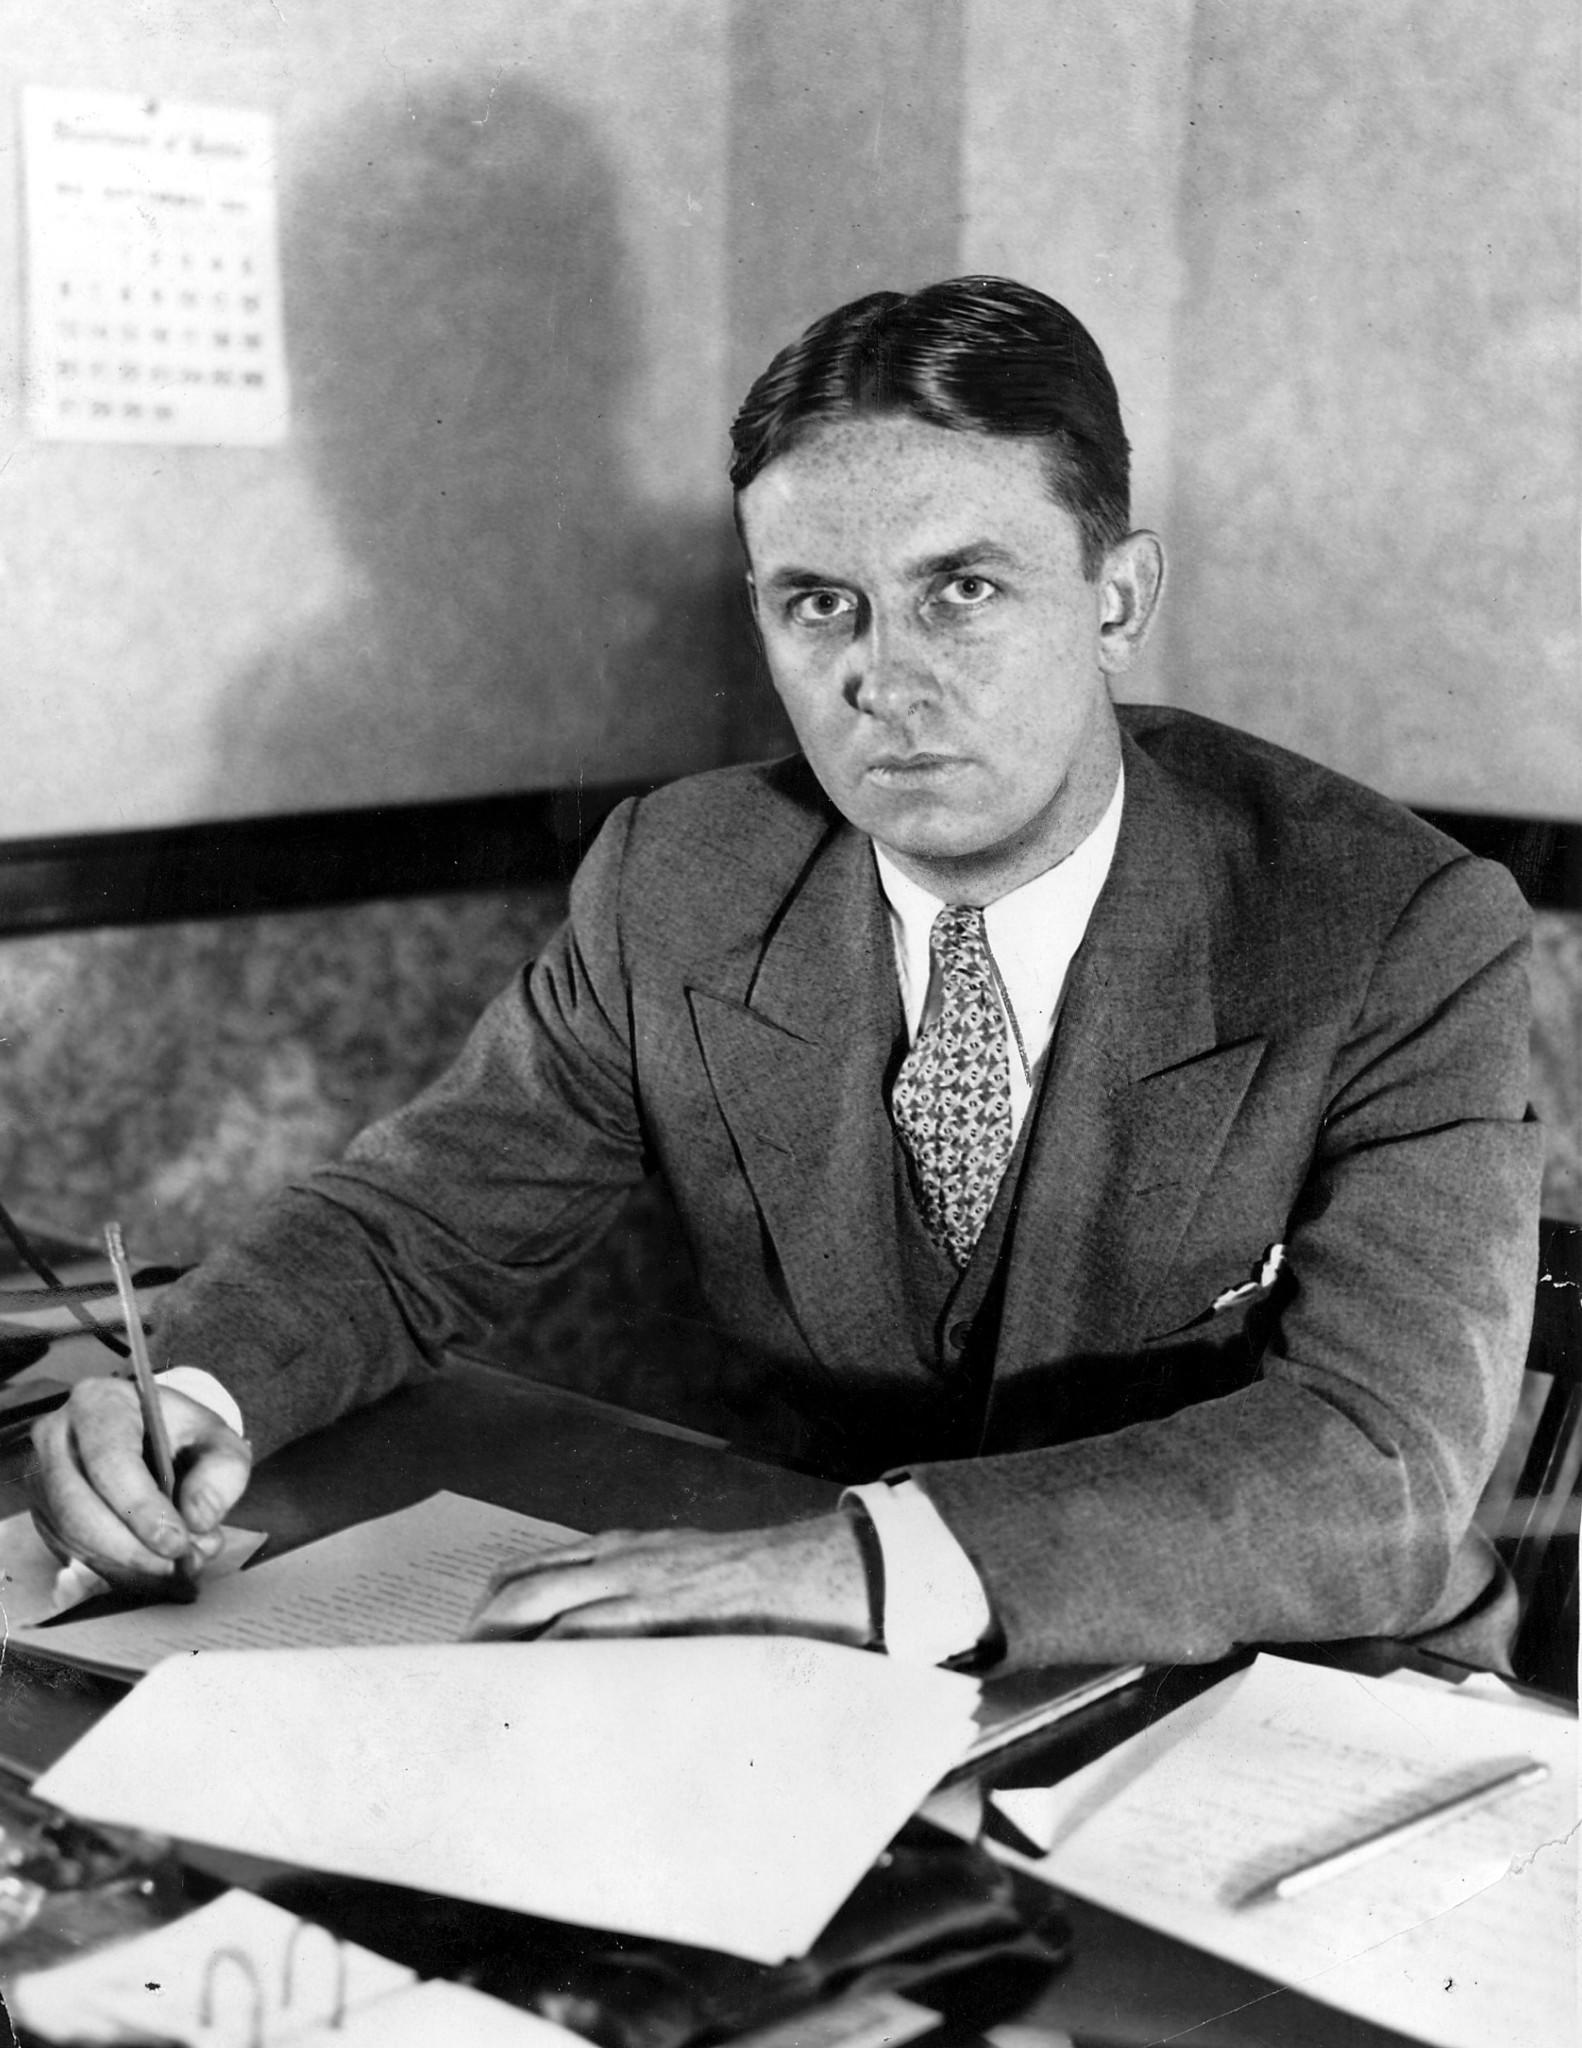 Eliot Ness (Tribune file)